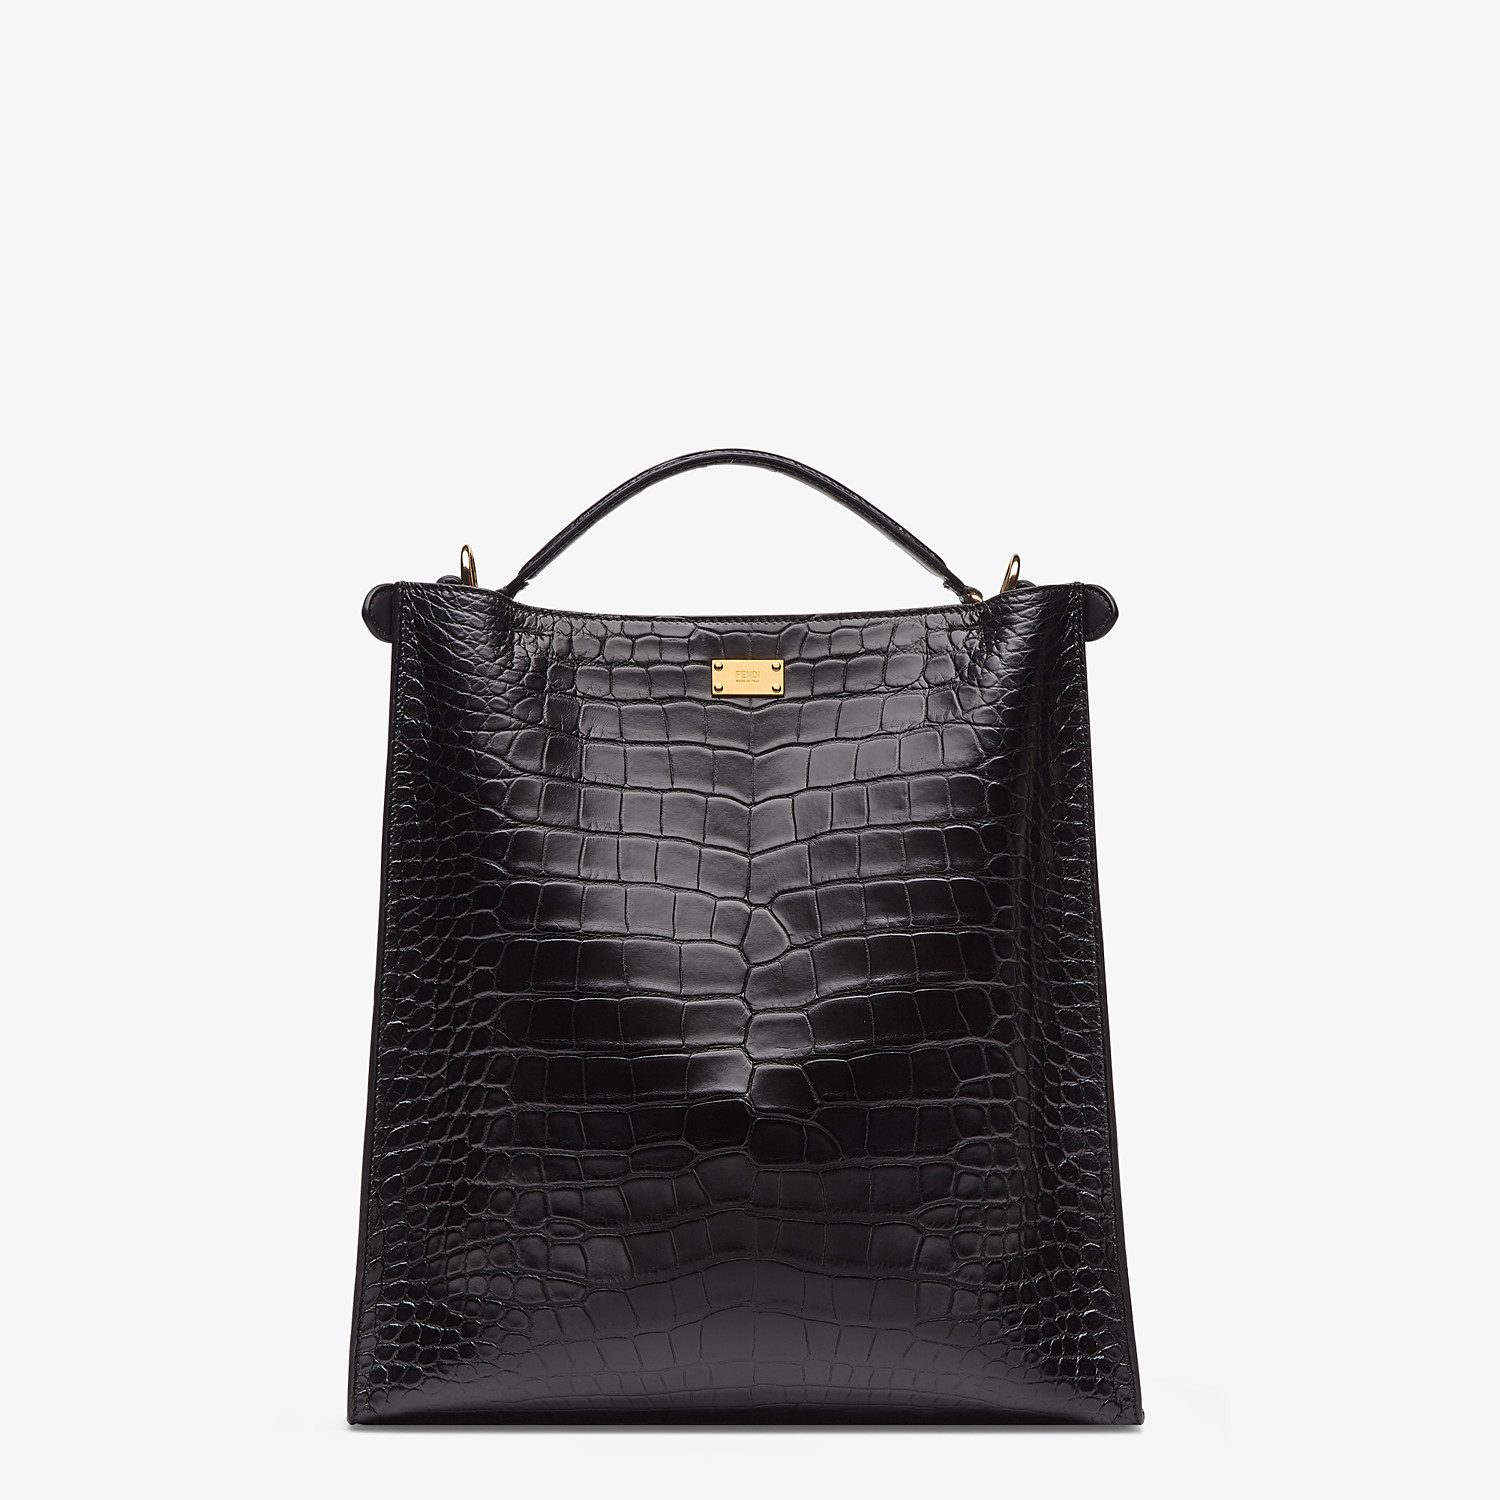 FENDI PEEKABOO X-LITE FIT - Black alligator leather bag - view 4 detail